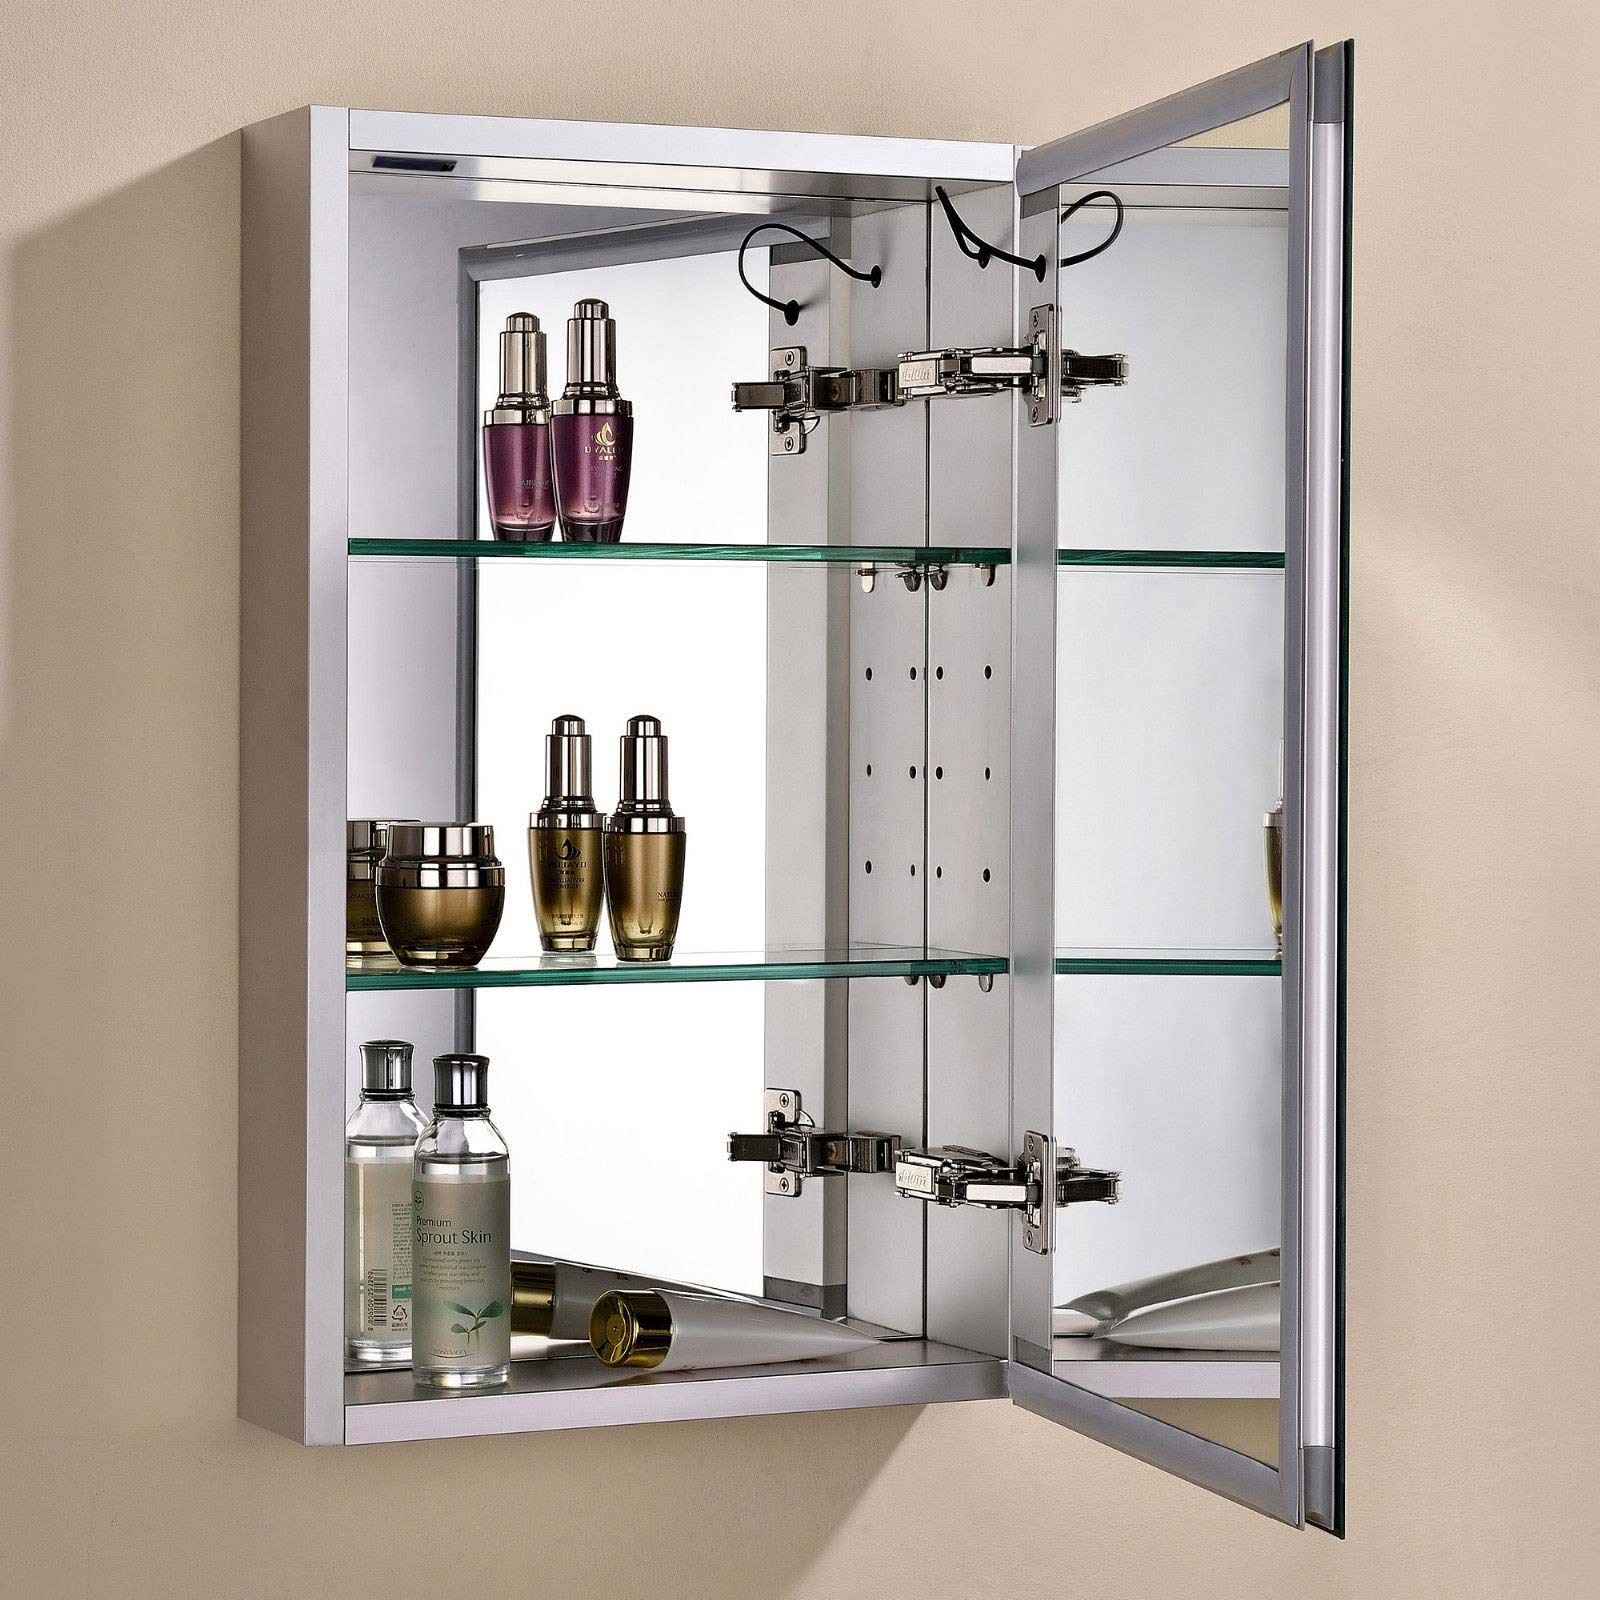 Bathroom Cabinet With Shaver Point Saturn Led Illuminated Bathroom Mirror Cabinet Infra Red Sensor